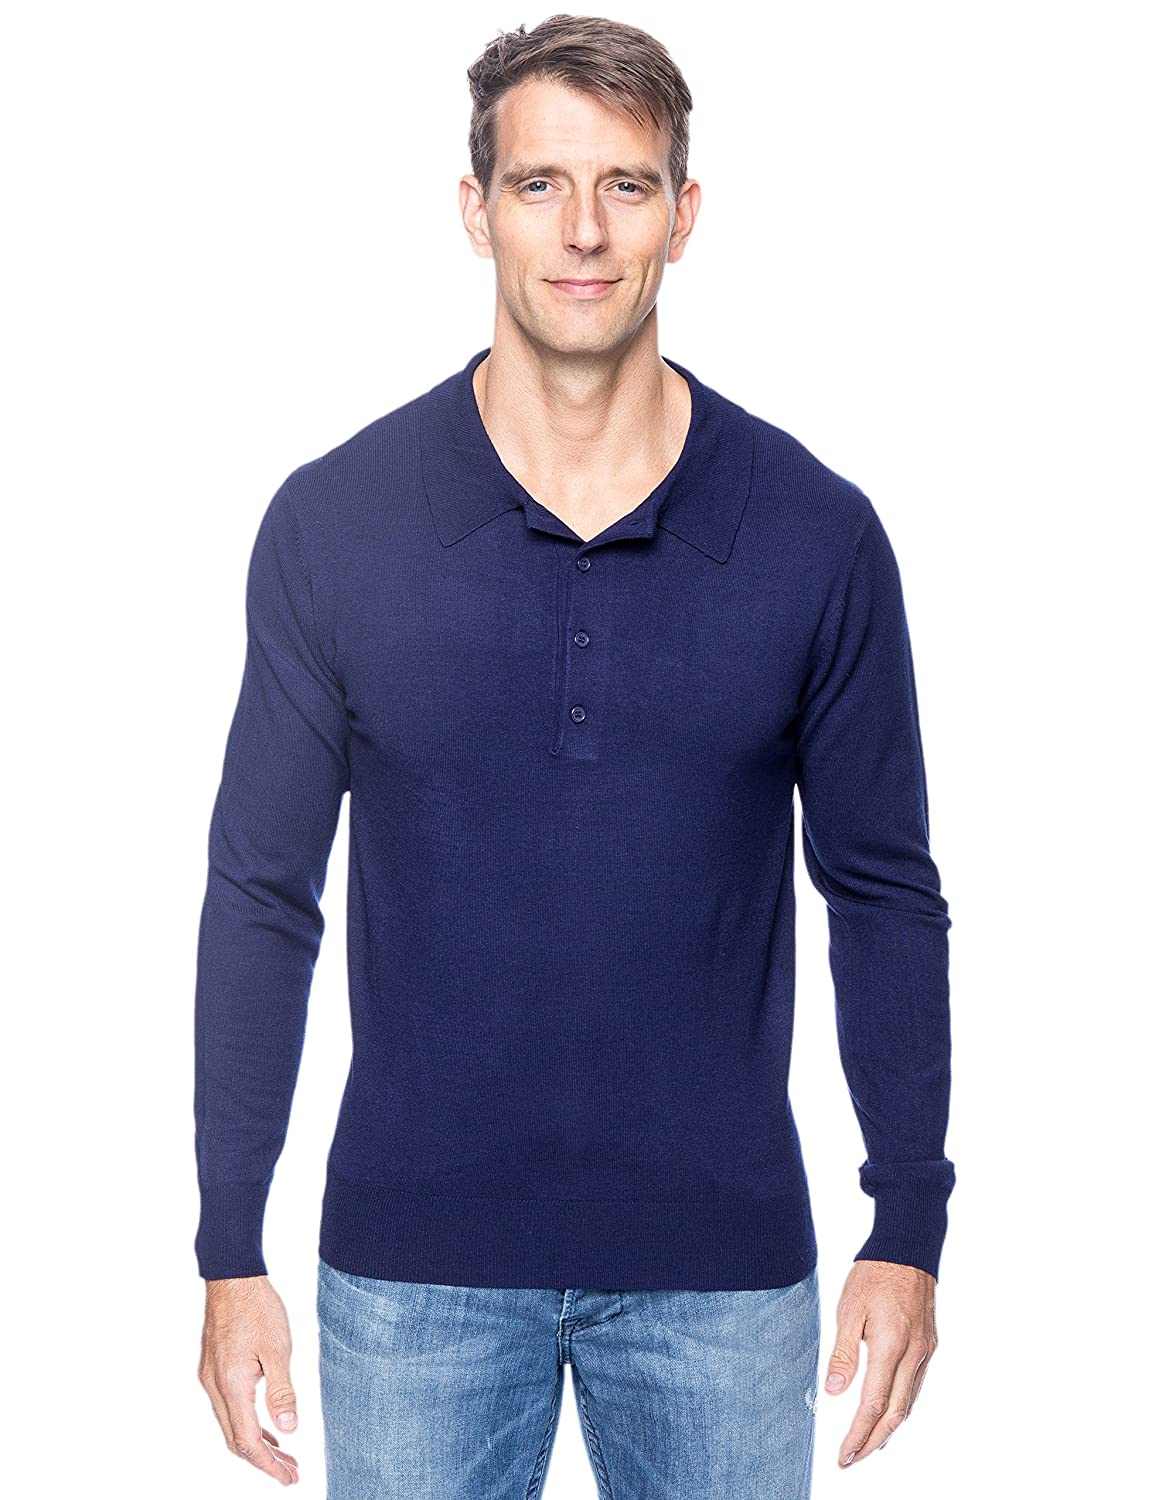 Noble Mount Tocco Reale Gift Packaged Men's Classic Knit Long Sleeve Polo Sweater tcr_mn_sw_vsnl12_lspolo